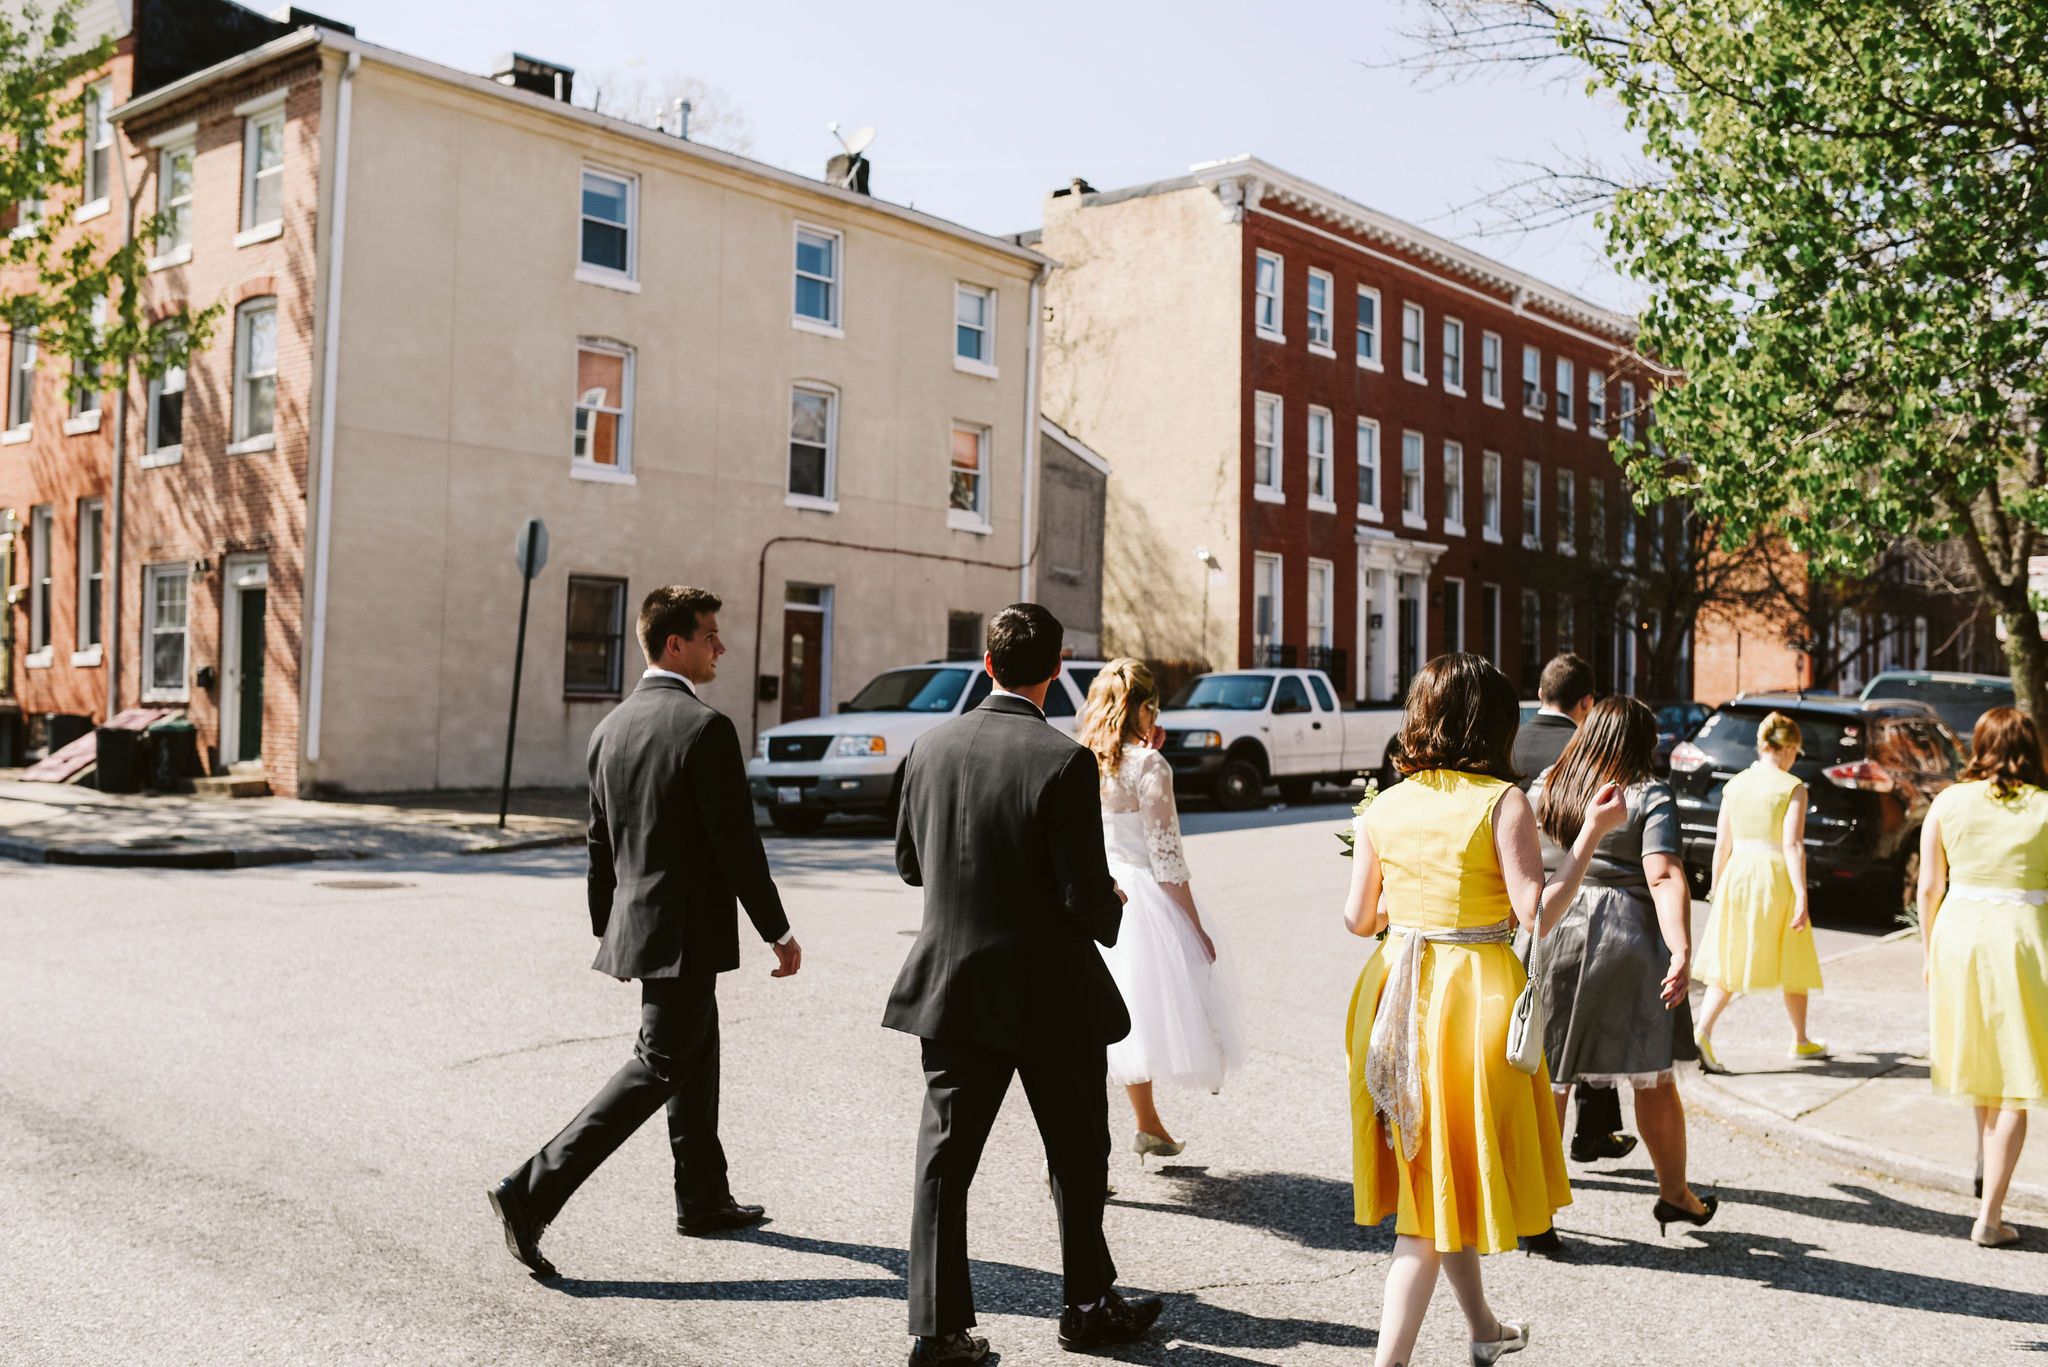 Baltimore, Church Wedding, Maryland Wedding Photographer, Vintage, Classic, 50s Style, Wedding Party Walking Downtown, Pigtown, Sunny Afternoon